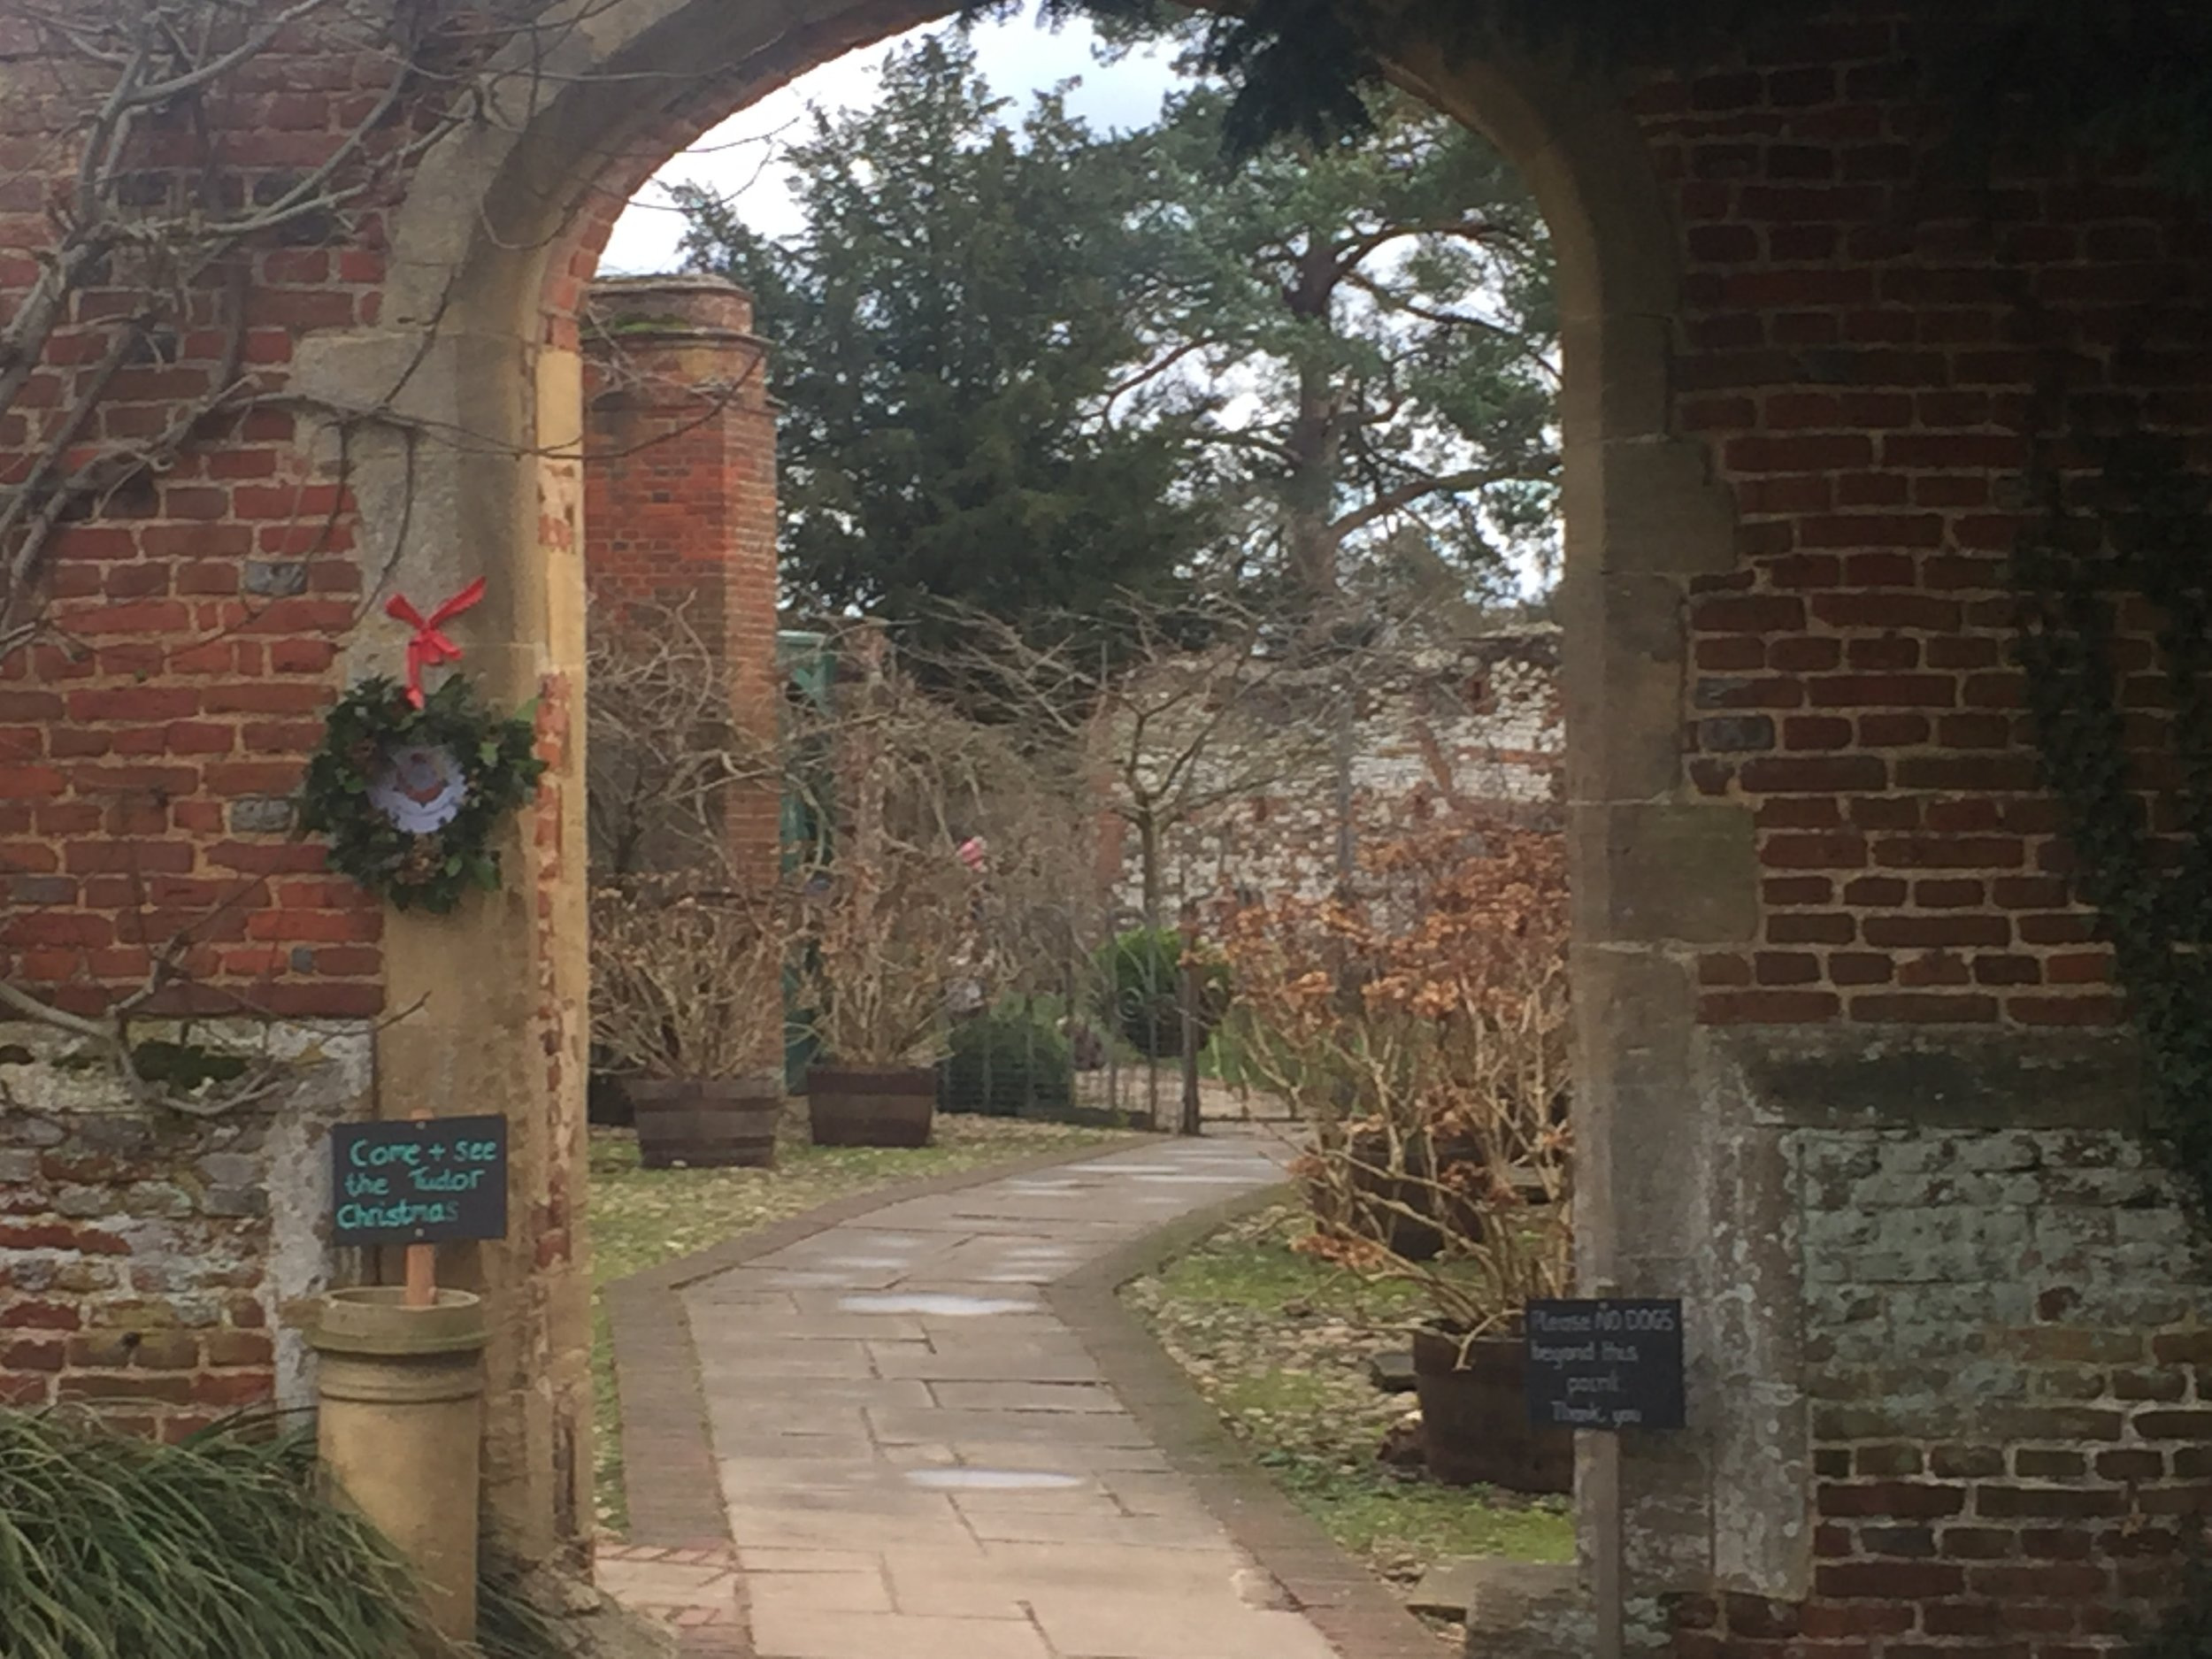 Entering the gardens at Greys Court.